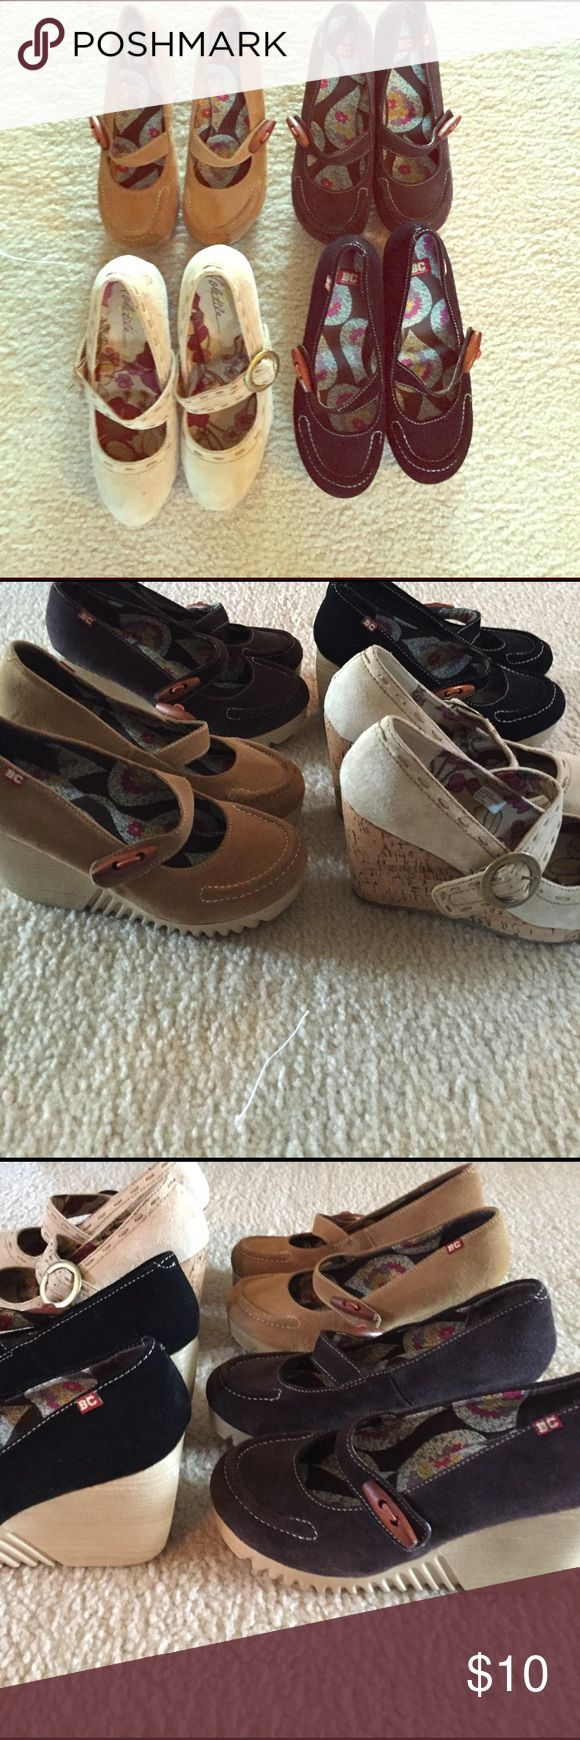 BC Mary Jane Shoes There are brown,tan,beige & black wedged Mary Janes Great Condition!👡👞👜If you want to buy them all $40.00 Just one pair 10.00 Shoes Wedges